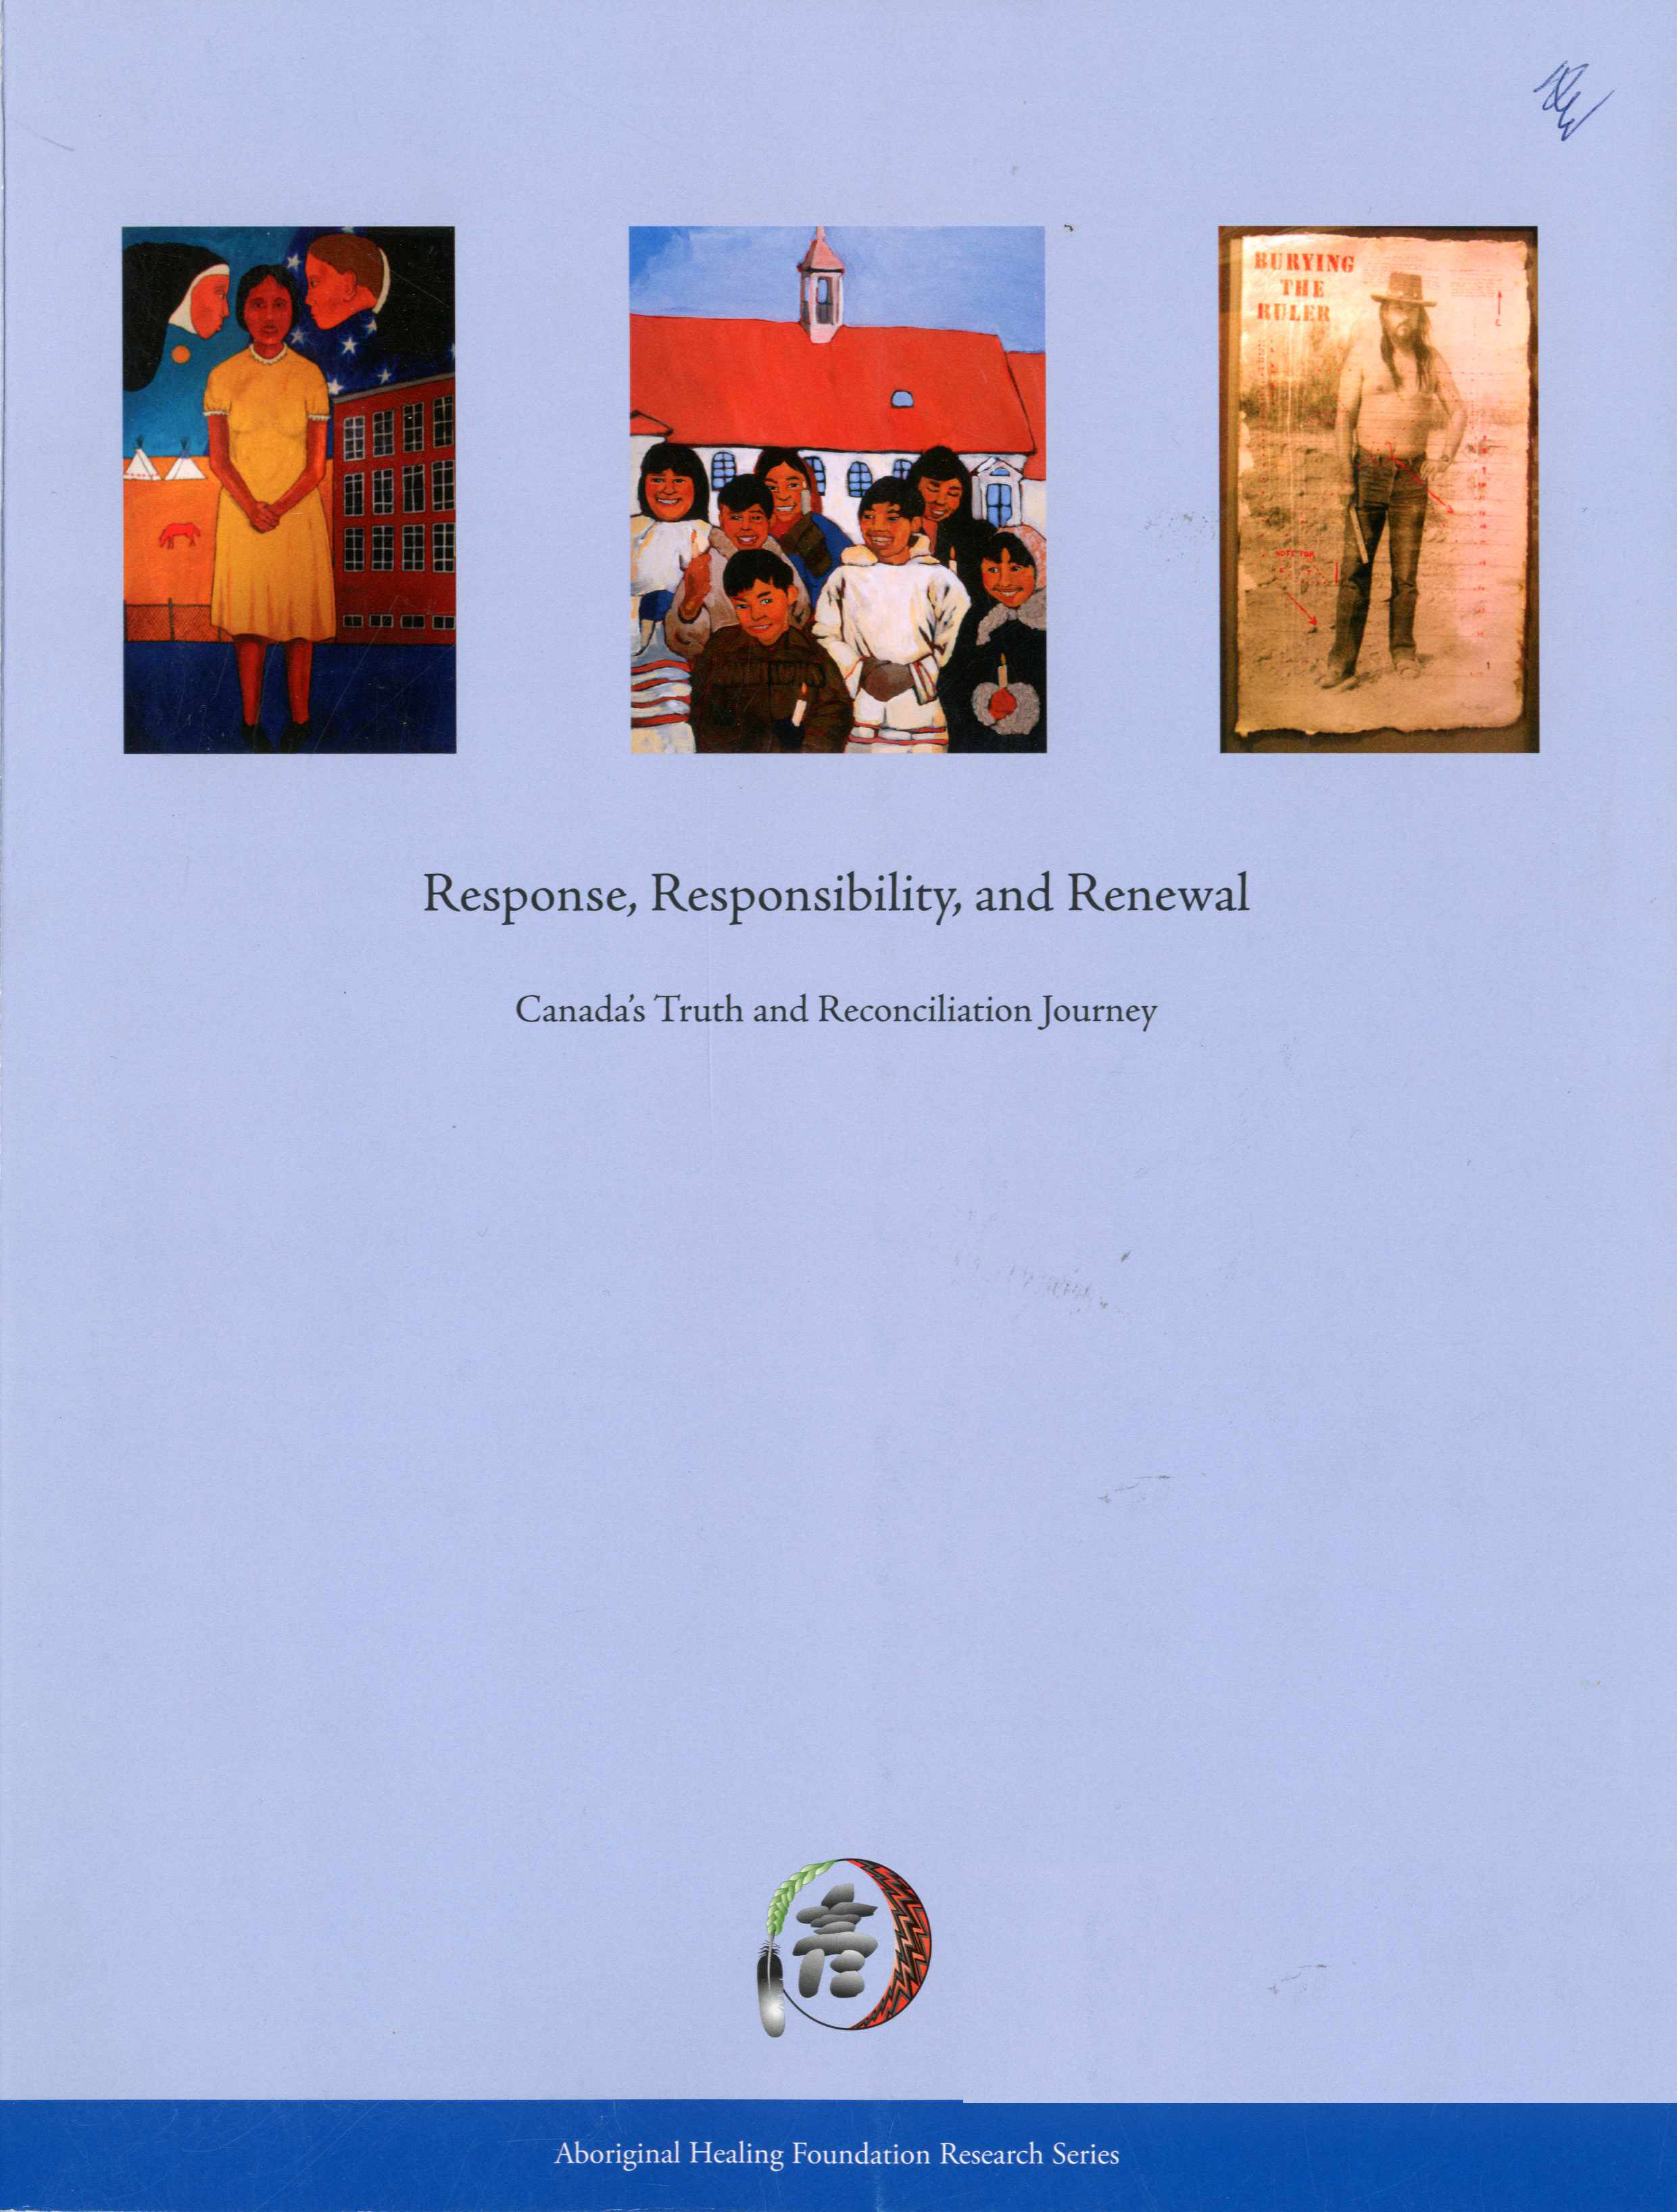 Response, Responsibilities and Renewal: Canada